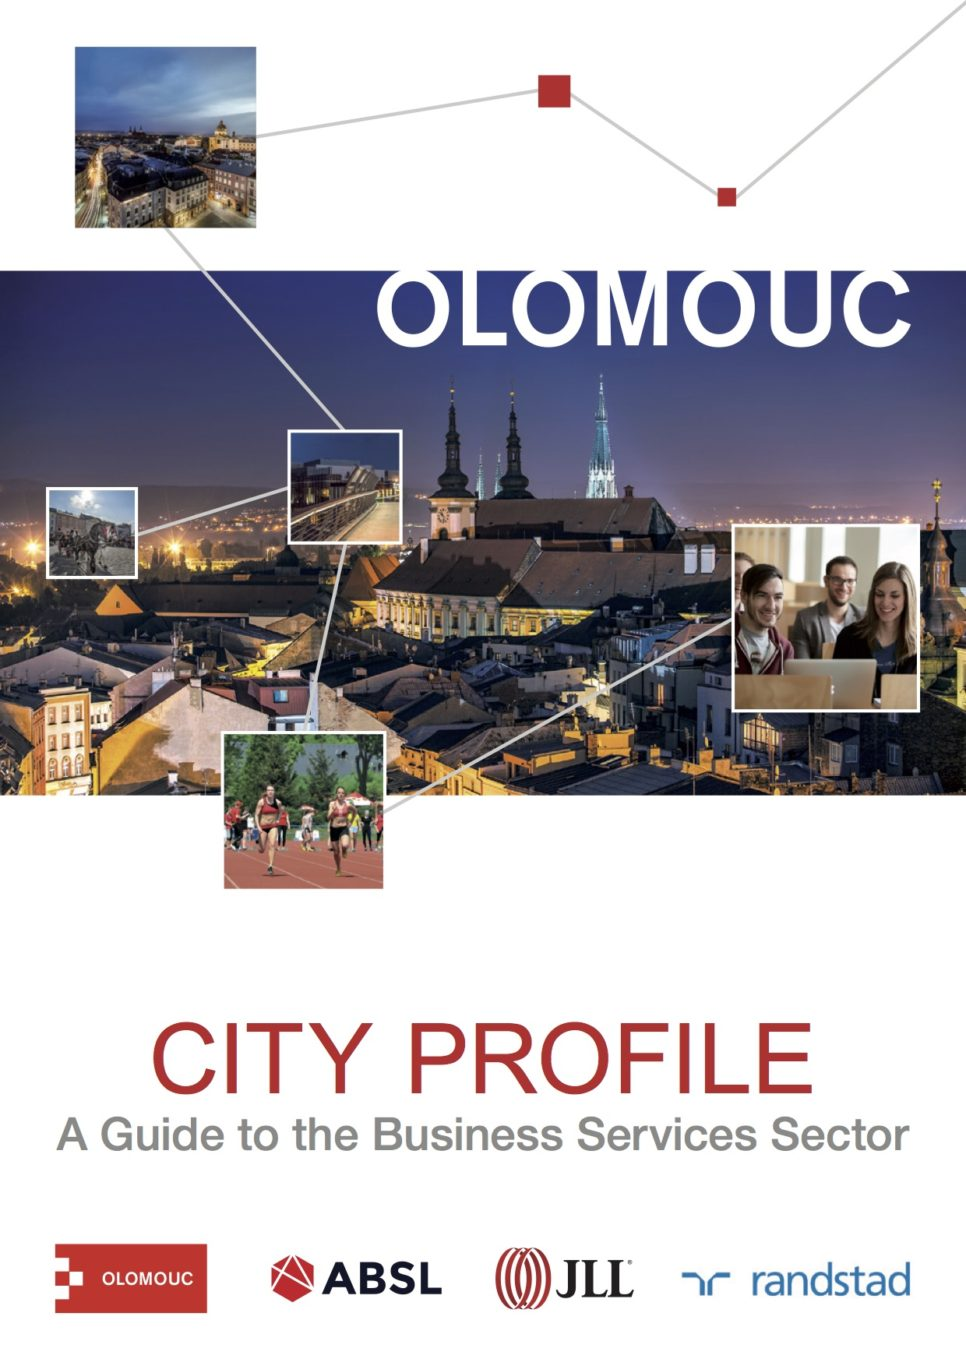 ABSL_Olomouc_City_Profile_2017_FINAL